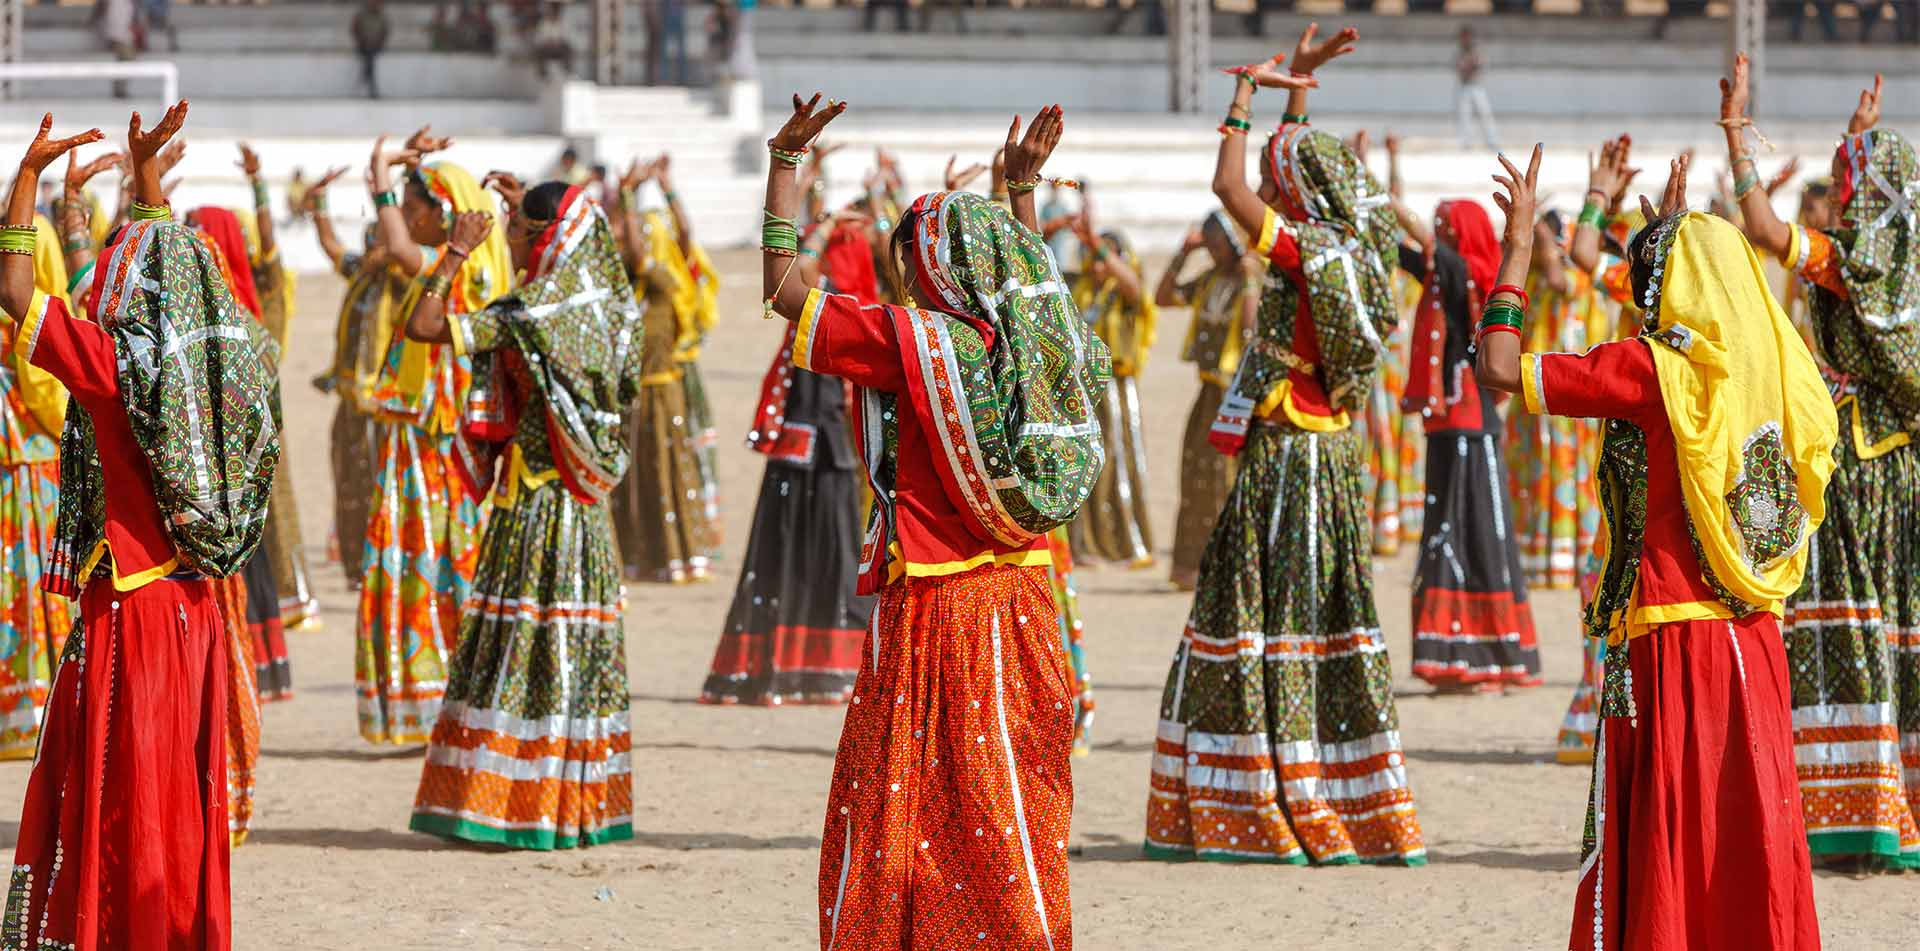 Indian girls in colorful clothing